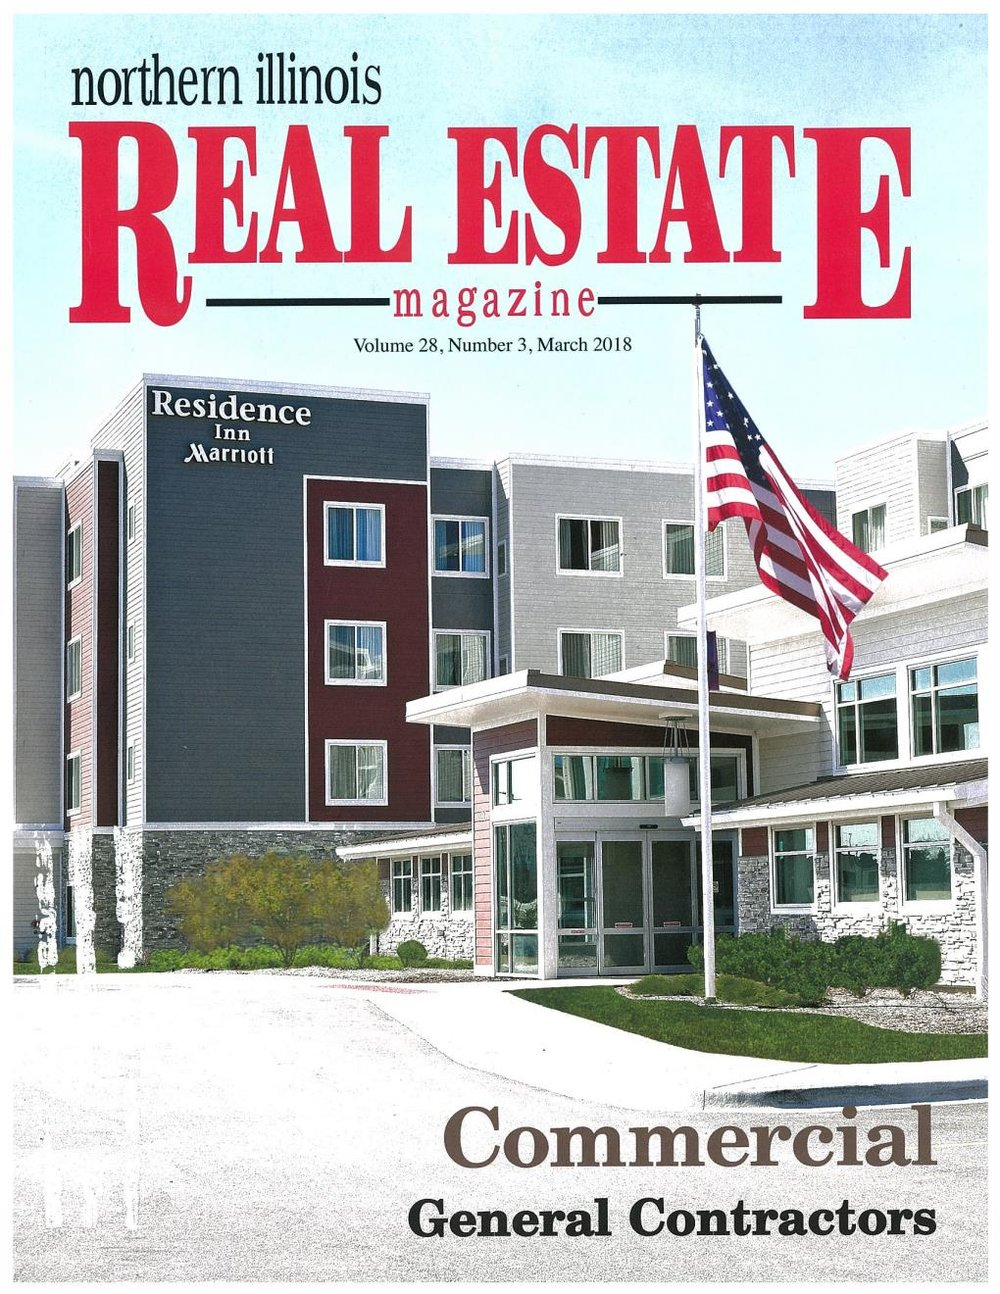 real estate cover.jpg